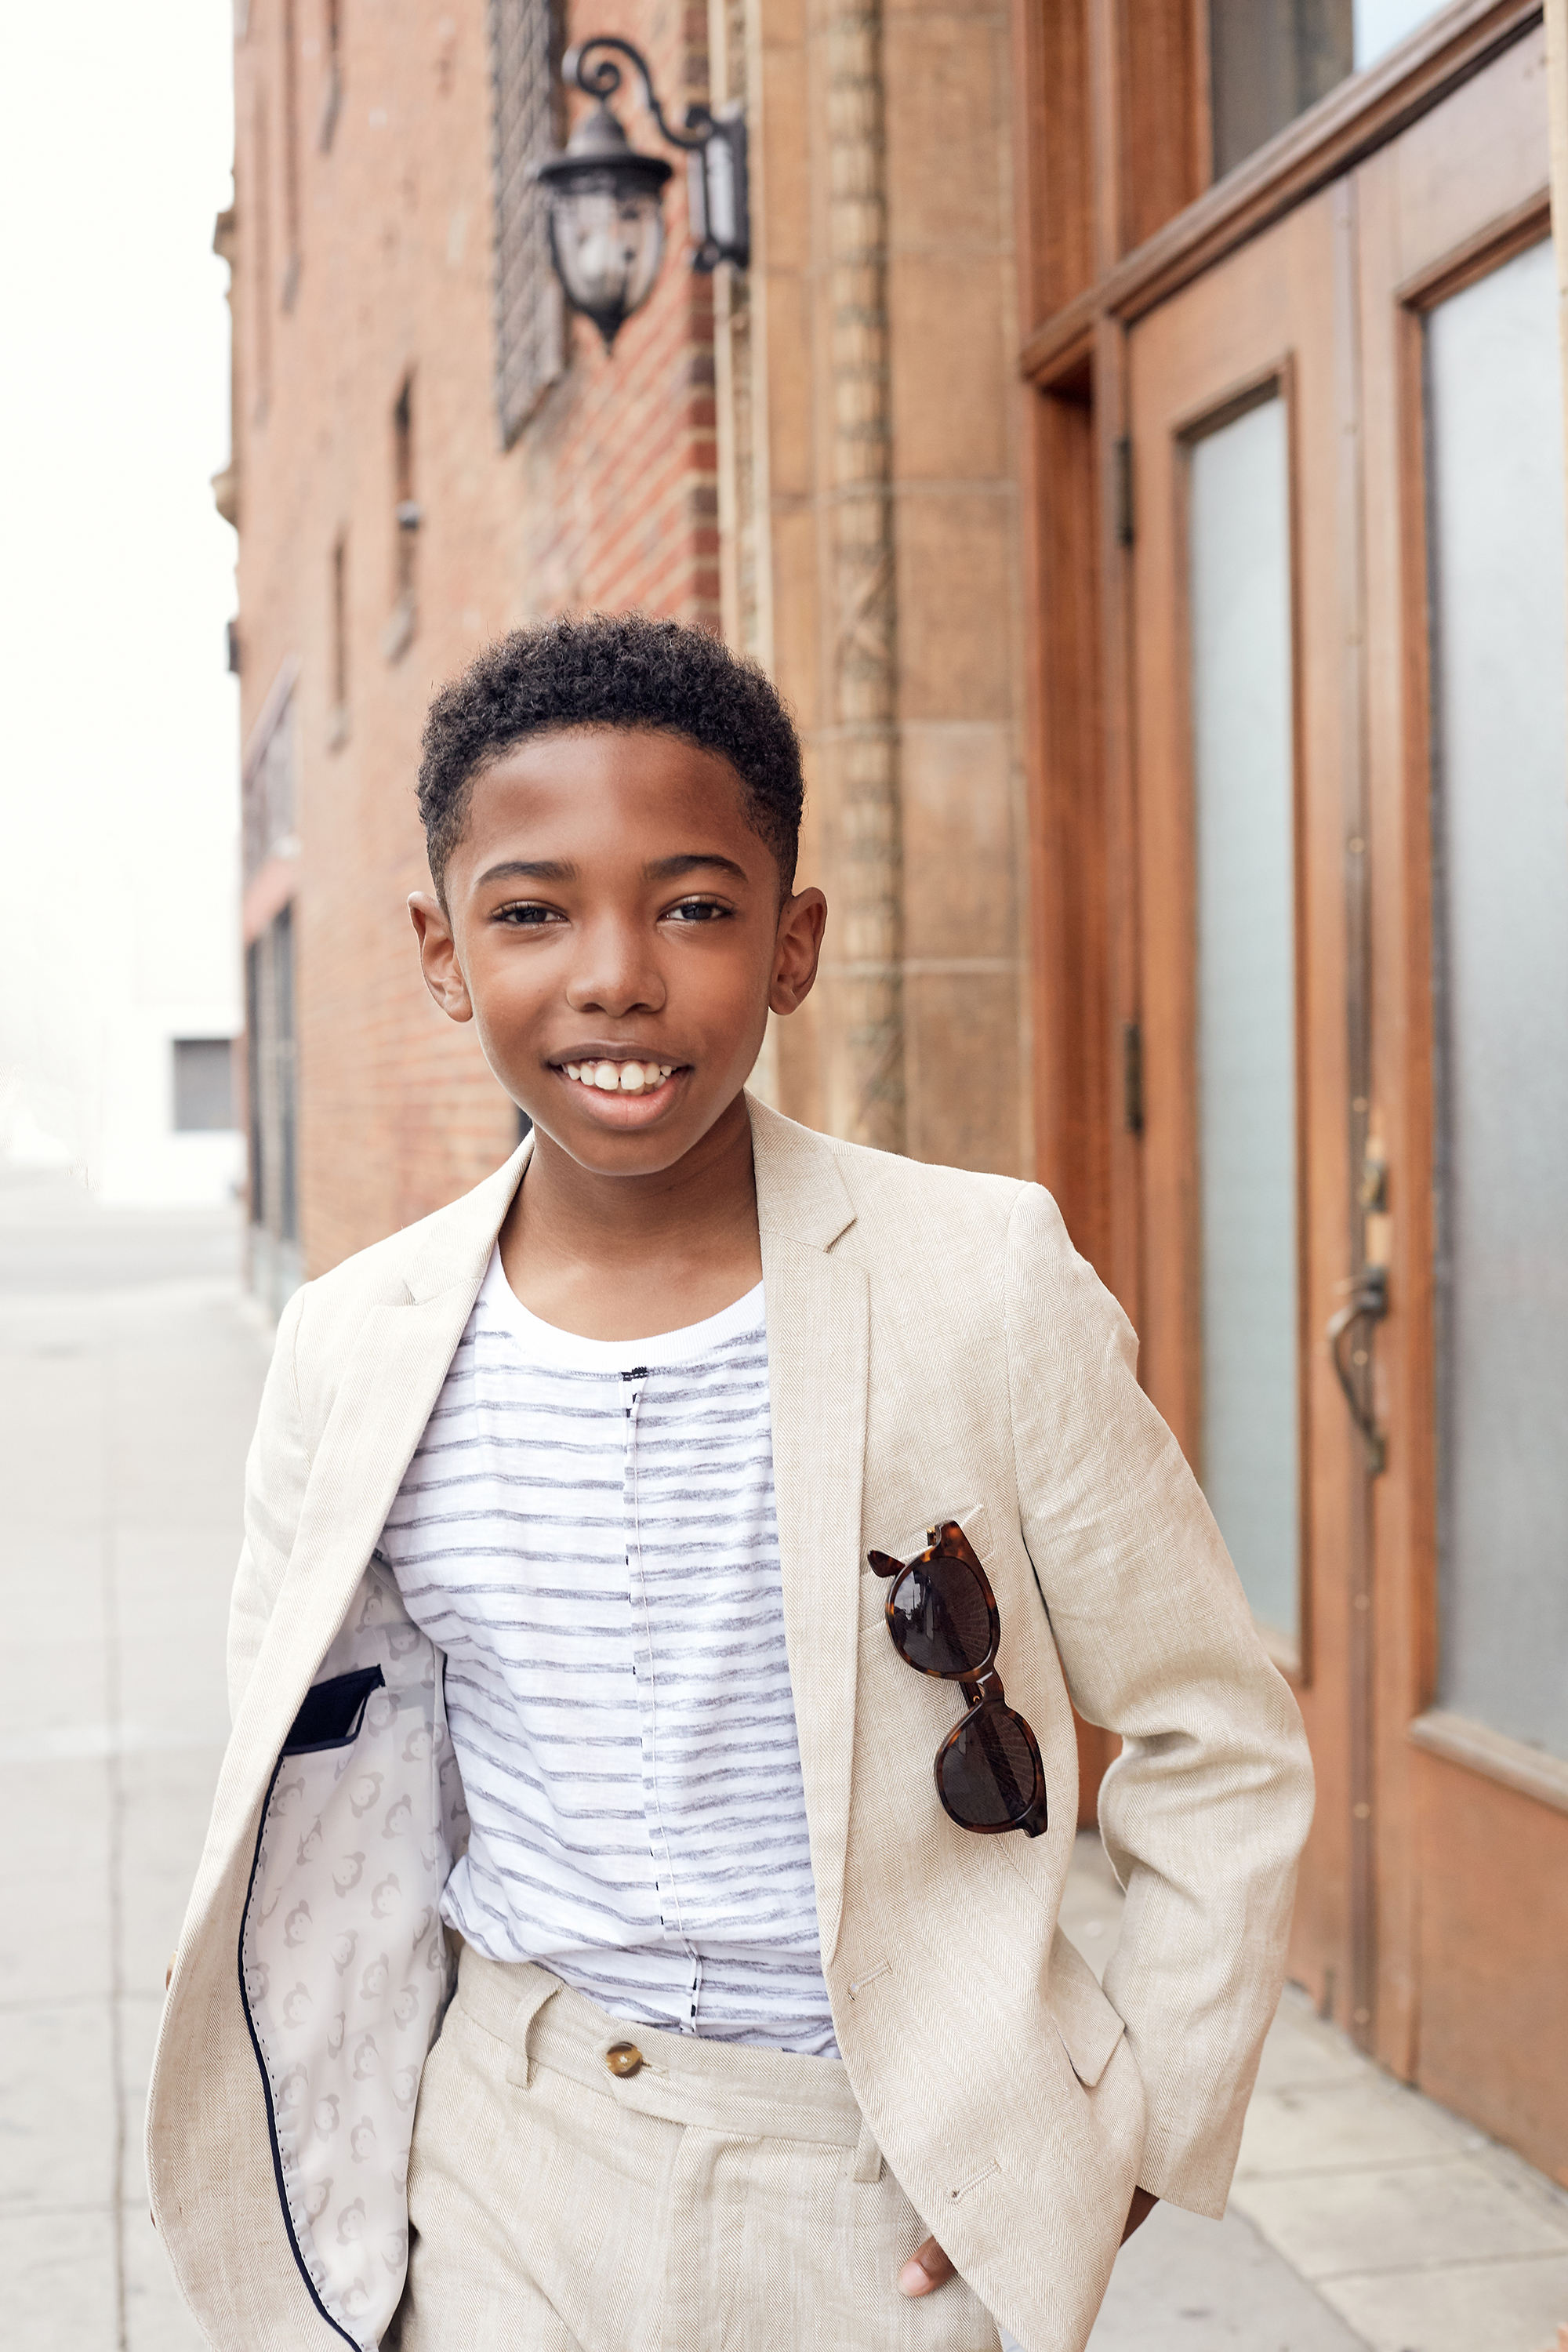 Seth Carr for Posh Kids Magazine  Suit: Appaman T-shirt: Stem Loafers: Florsheim Sunglasses: Retrosuperfuture  Wardrobe - Angelique Fortuna  Grooming - Renee Loiz  Photograph - Ryan Pavlovich